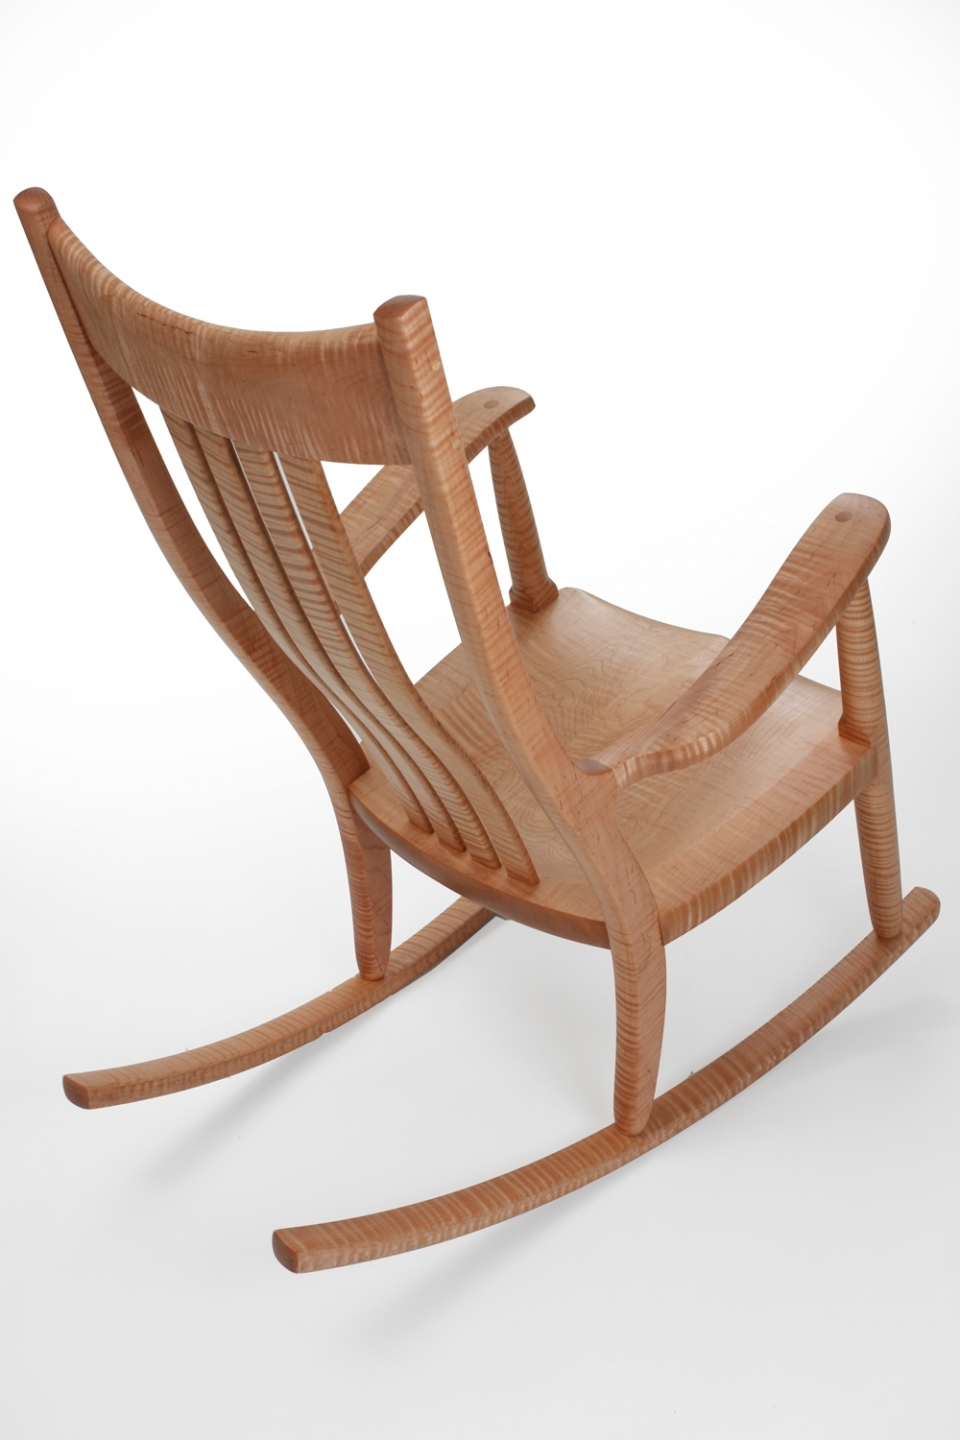 curly maple rocking chair, quarter overhead view